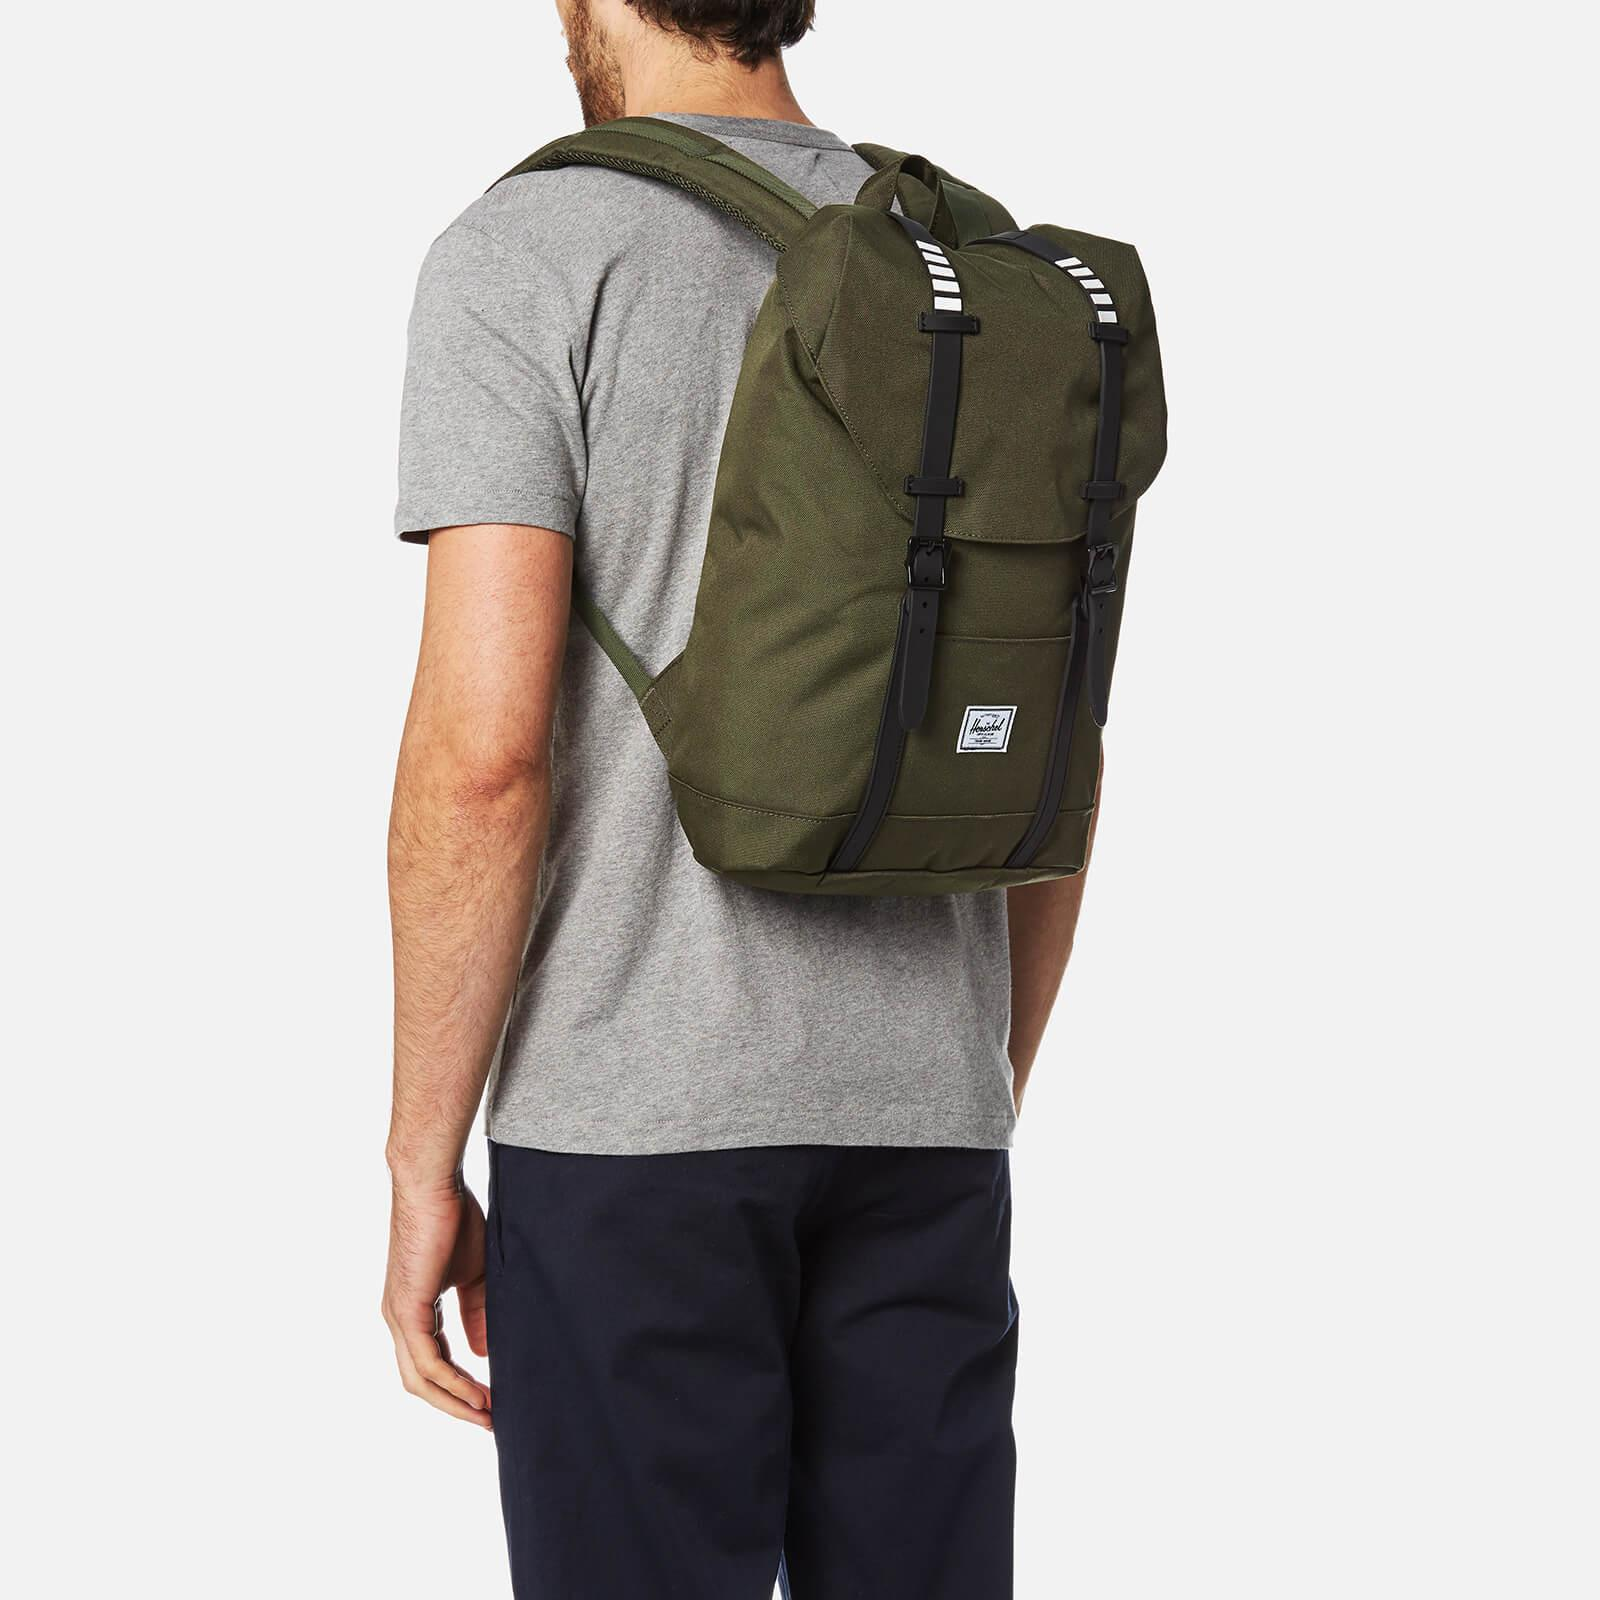 db40a11e93c Herschel Supply Co. Retreat Mid-volume Backpack in Green for Men - Lyst